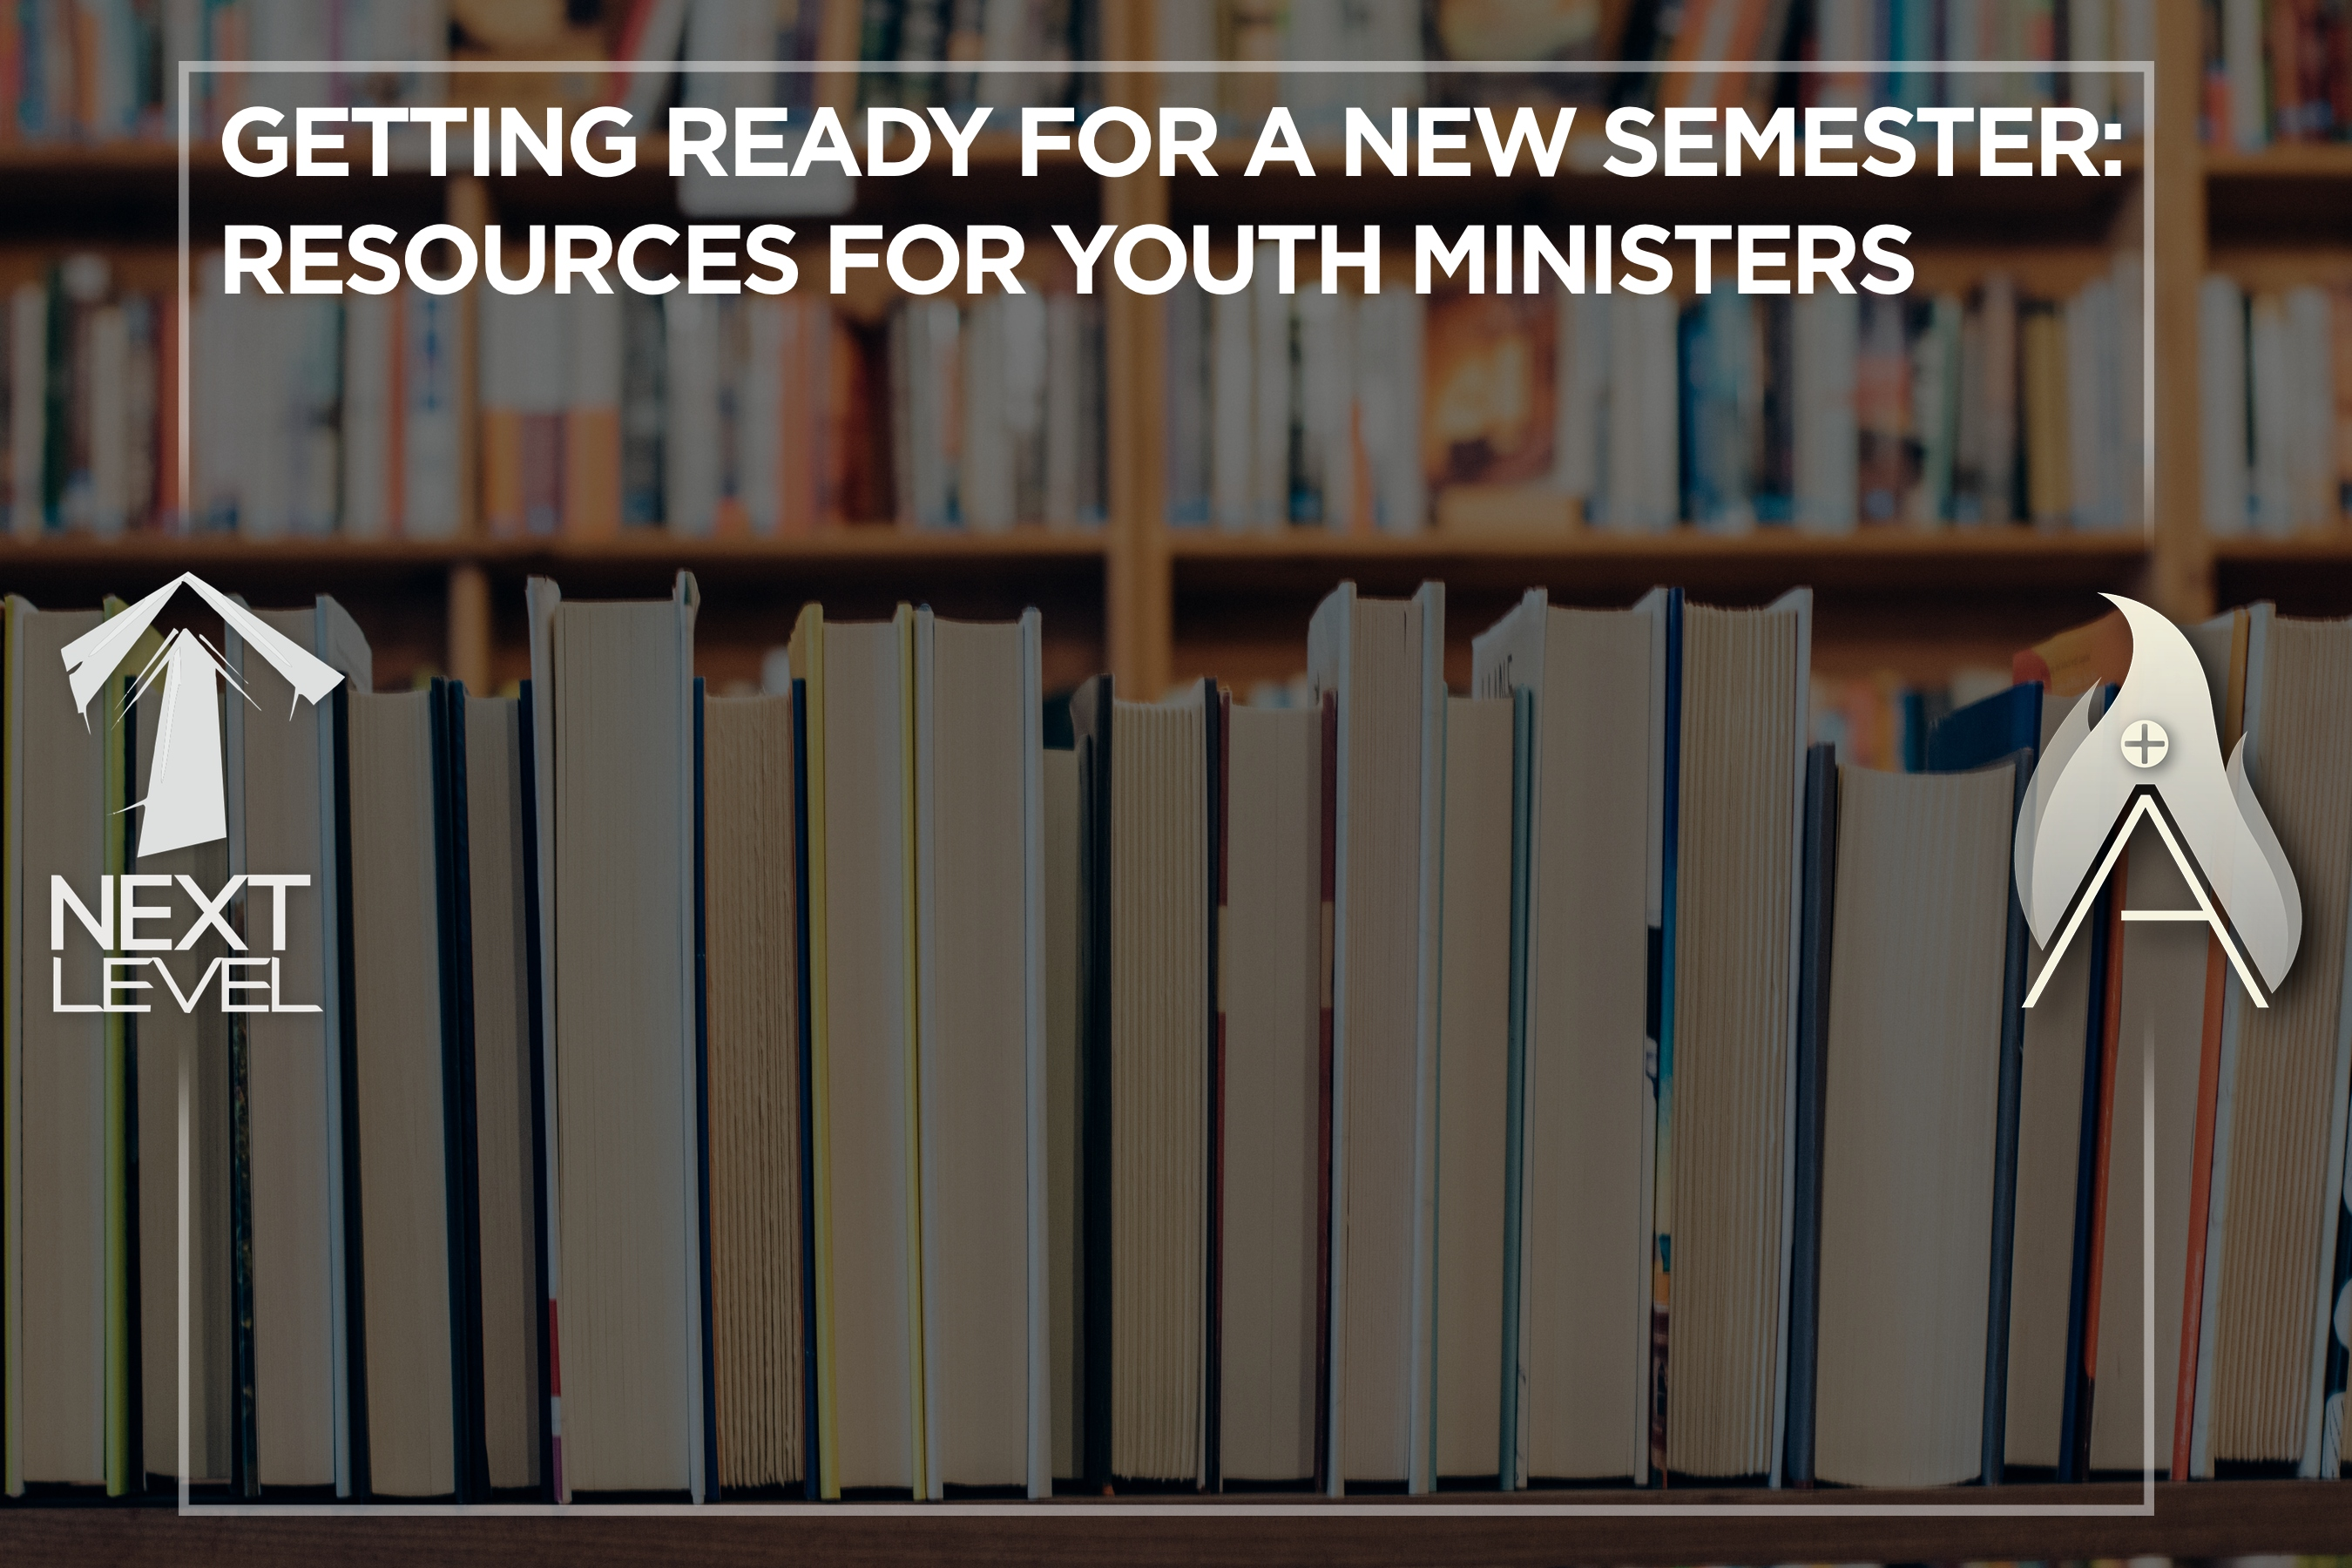 getting ready for a new semester, resources, resource blast, blog, videos